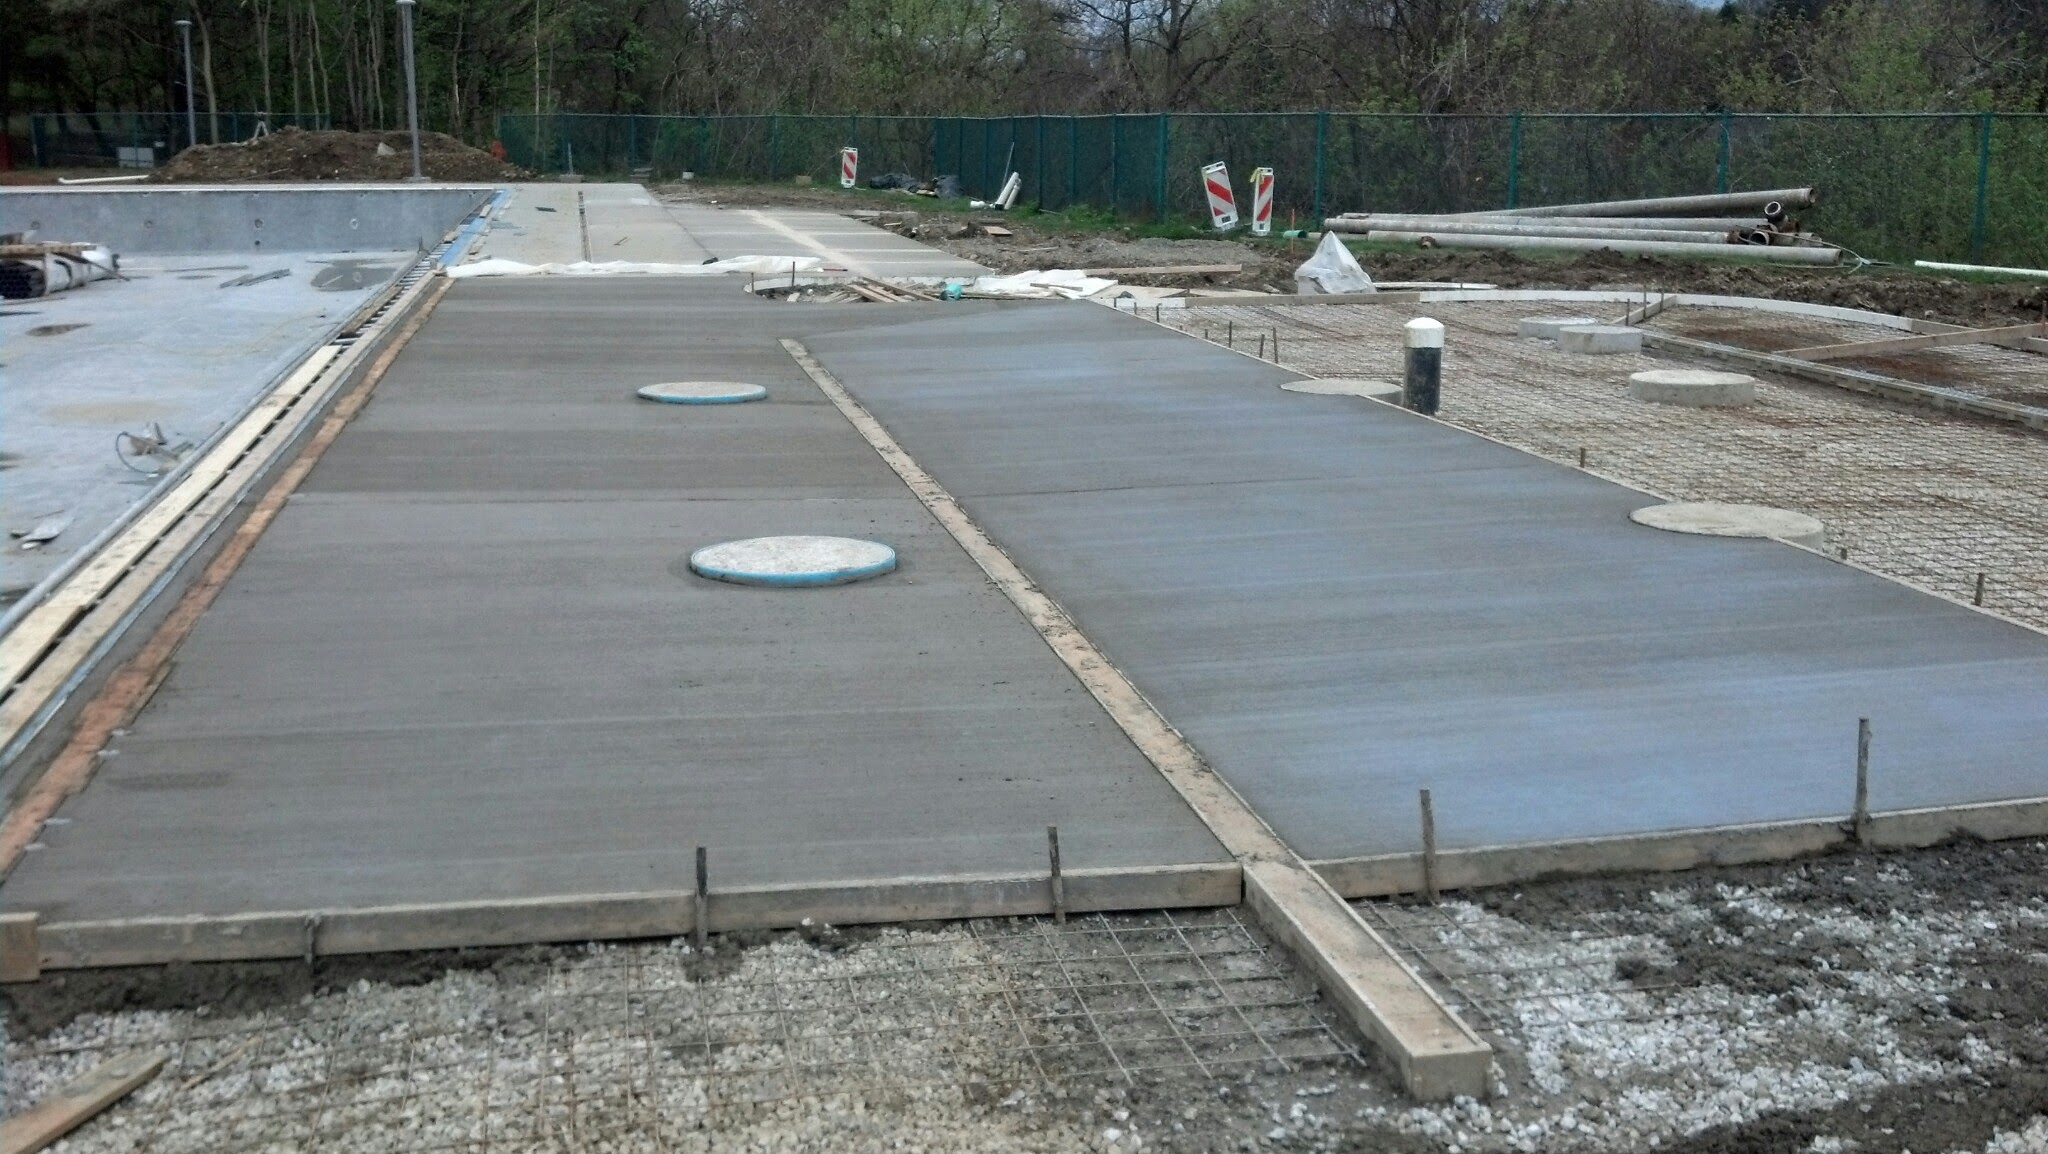 5-2-14 West Pool Deck Pour, Dual Slide Tower Foote